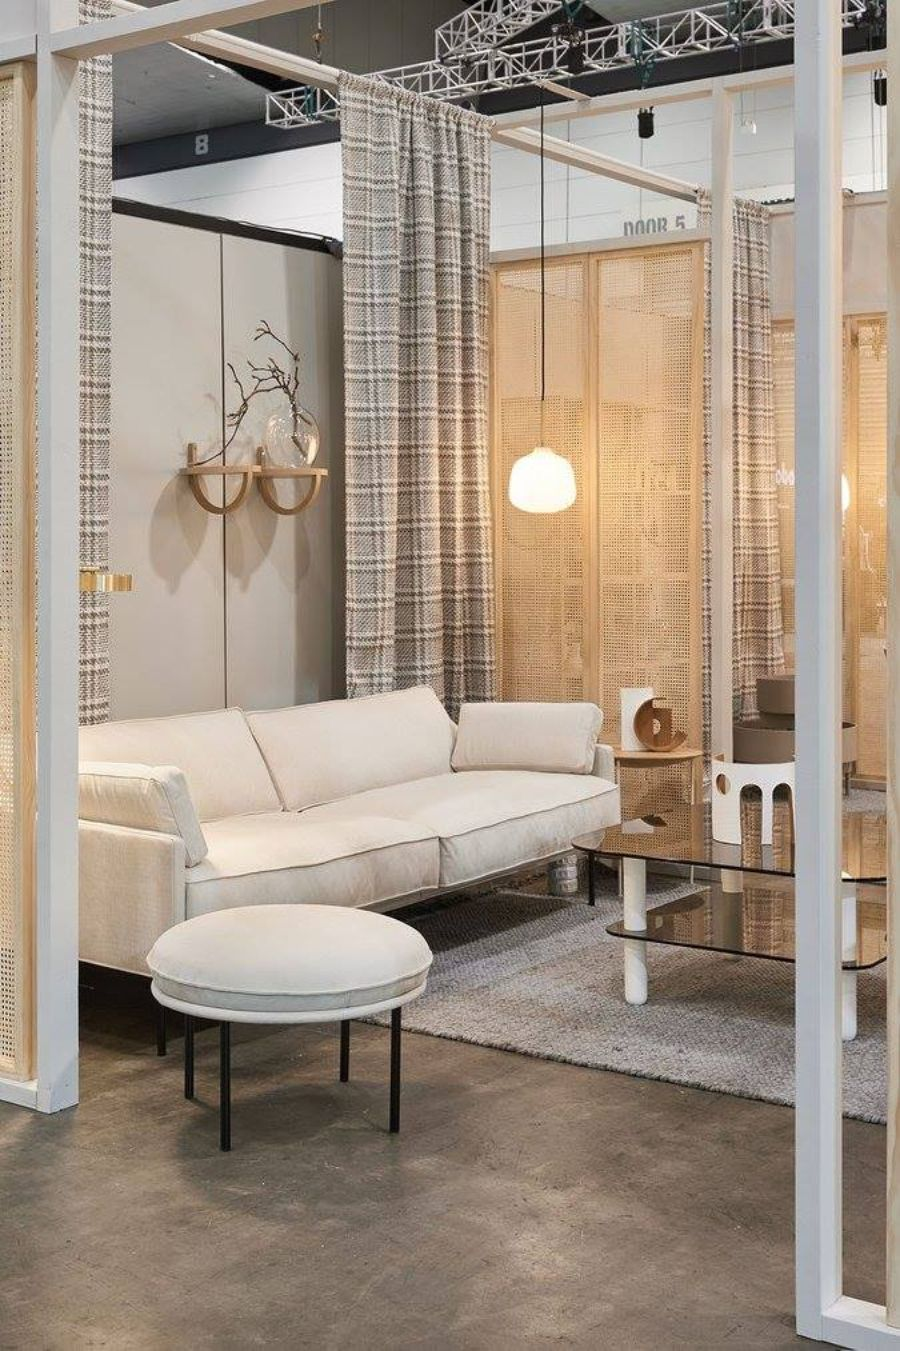 Showrooms in Sydney, A List of Amazing Design Stores You Have to Visit showrooms in sydney Showrooms in Sydney, A List of Amazing Design Stores You Have to Visit Showrooms in Sydney A List of Amazing Design Stores You Have to Visit 8